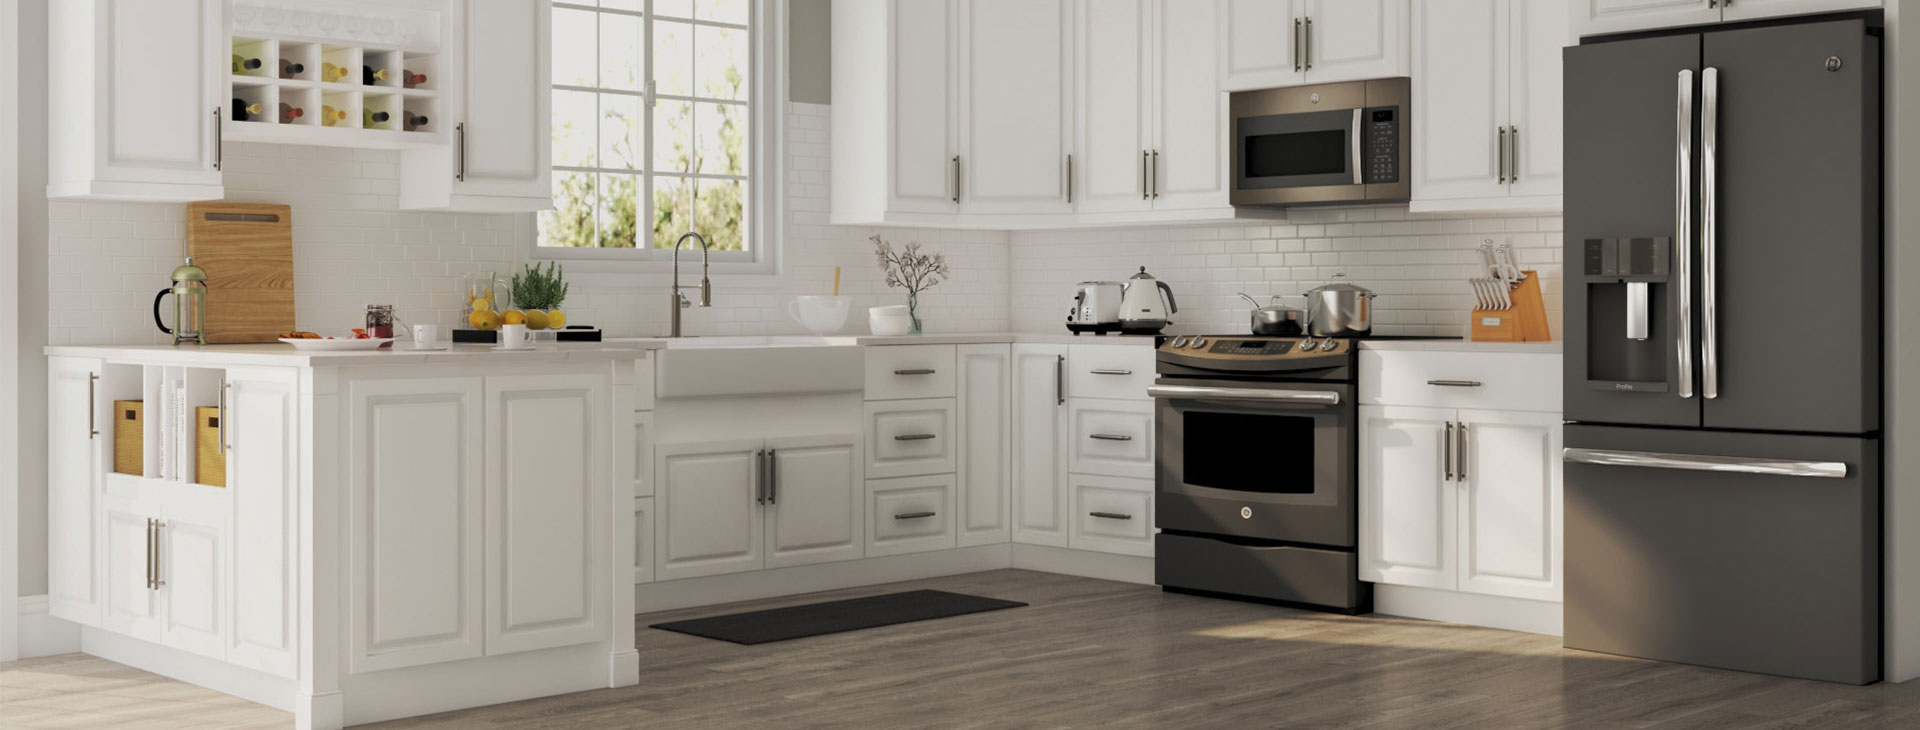 kitchen-remodel-kitchen-remodeling-contractors-chicago